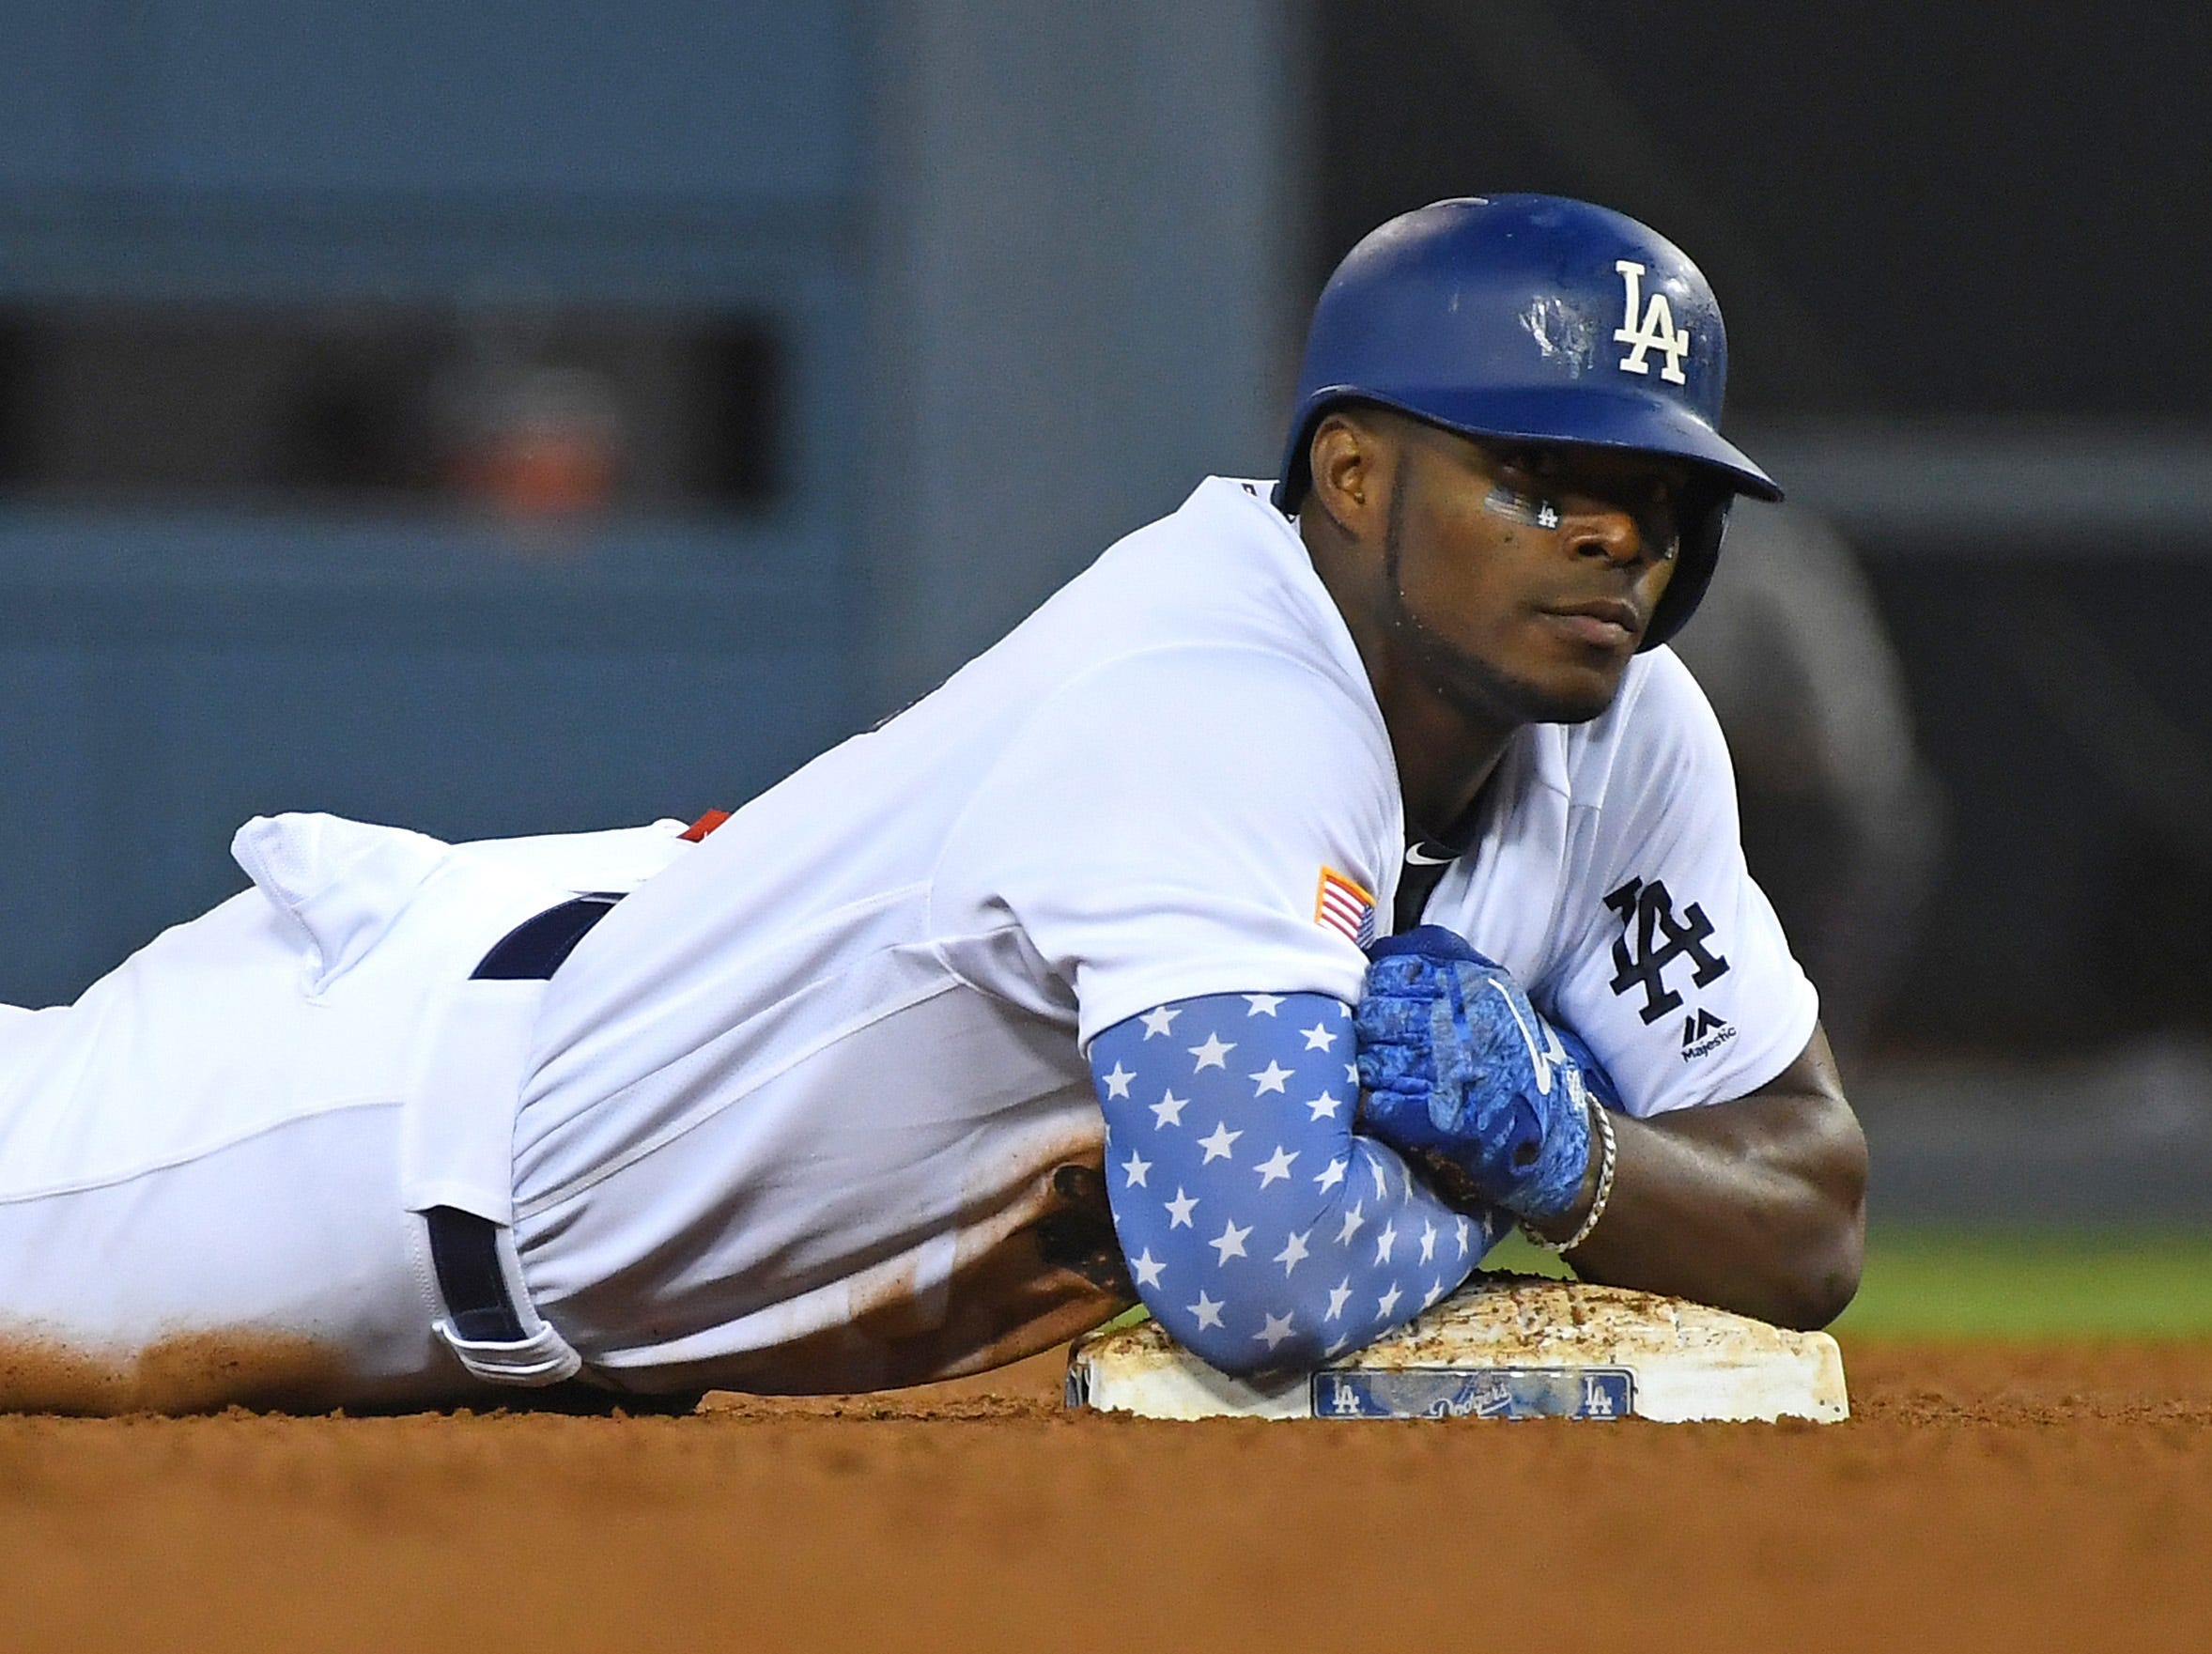 July 2: Los Angeles Dodgers right fielder Yasiel Puig rests on second after hitting a double in the sixth inning of the game against the Pittsburgh Pirates at Dodger Stadium.